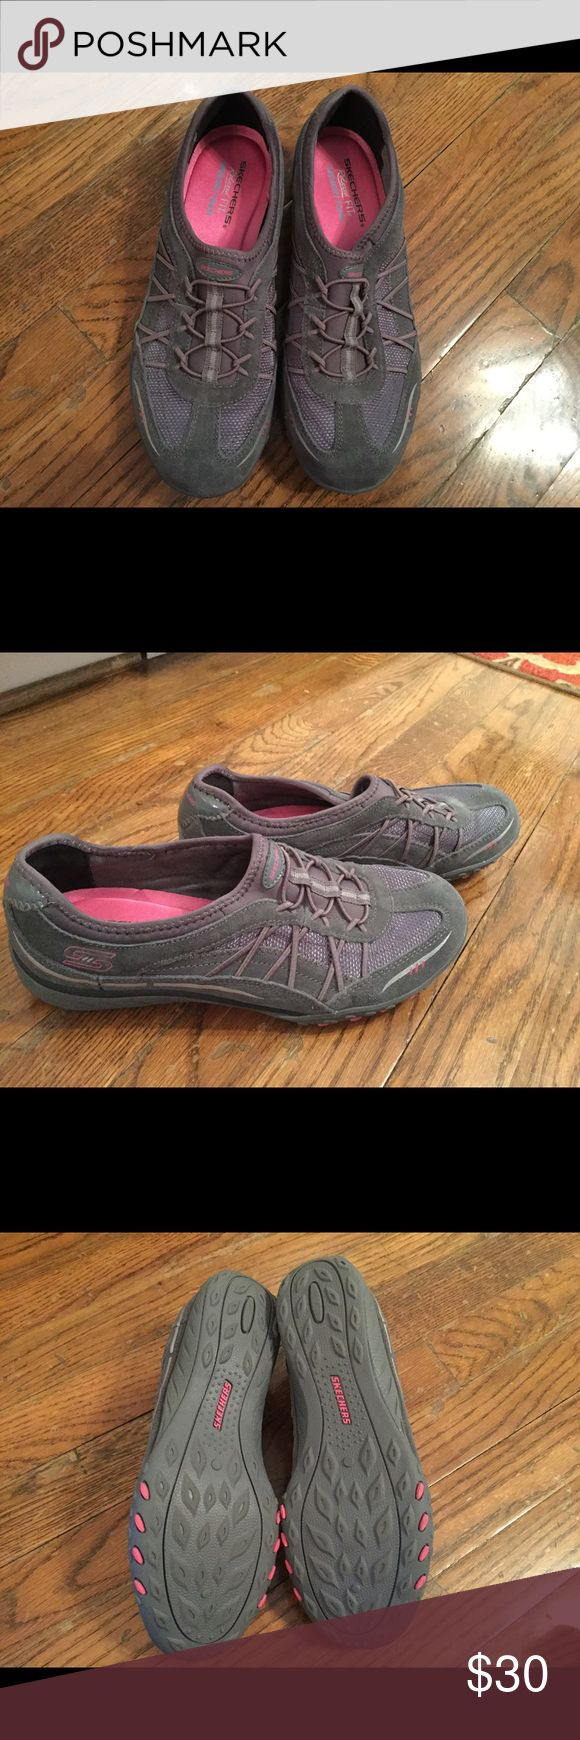 SKECHERS LADIES SHOES SKECHERS RELAXED FIT - BREATHE EASY LEATHER ATHLETIC SNEAKERS. MEMORY FOAM, SOFT SUEDE WOVEN  MESH FABRIC UPPER, SLIP ON BUNGEE STRETCH LACED SLIP ON. NEW WITHOUT TAGS!!' Skechers Shoes Athletic Shoes